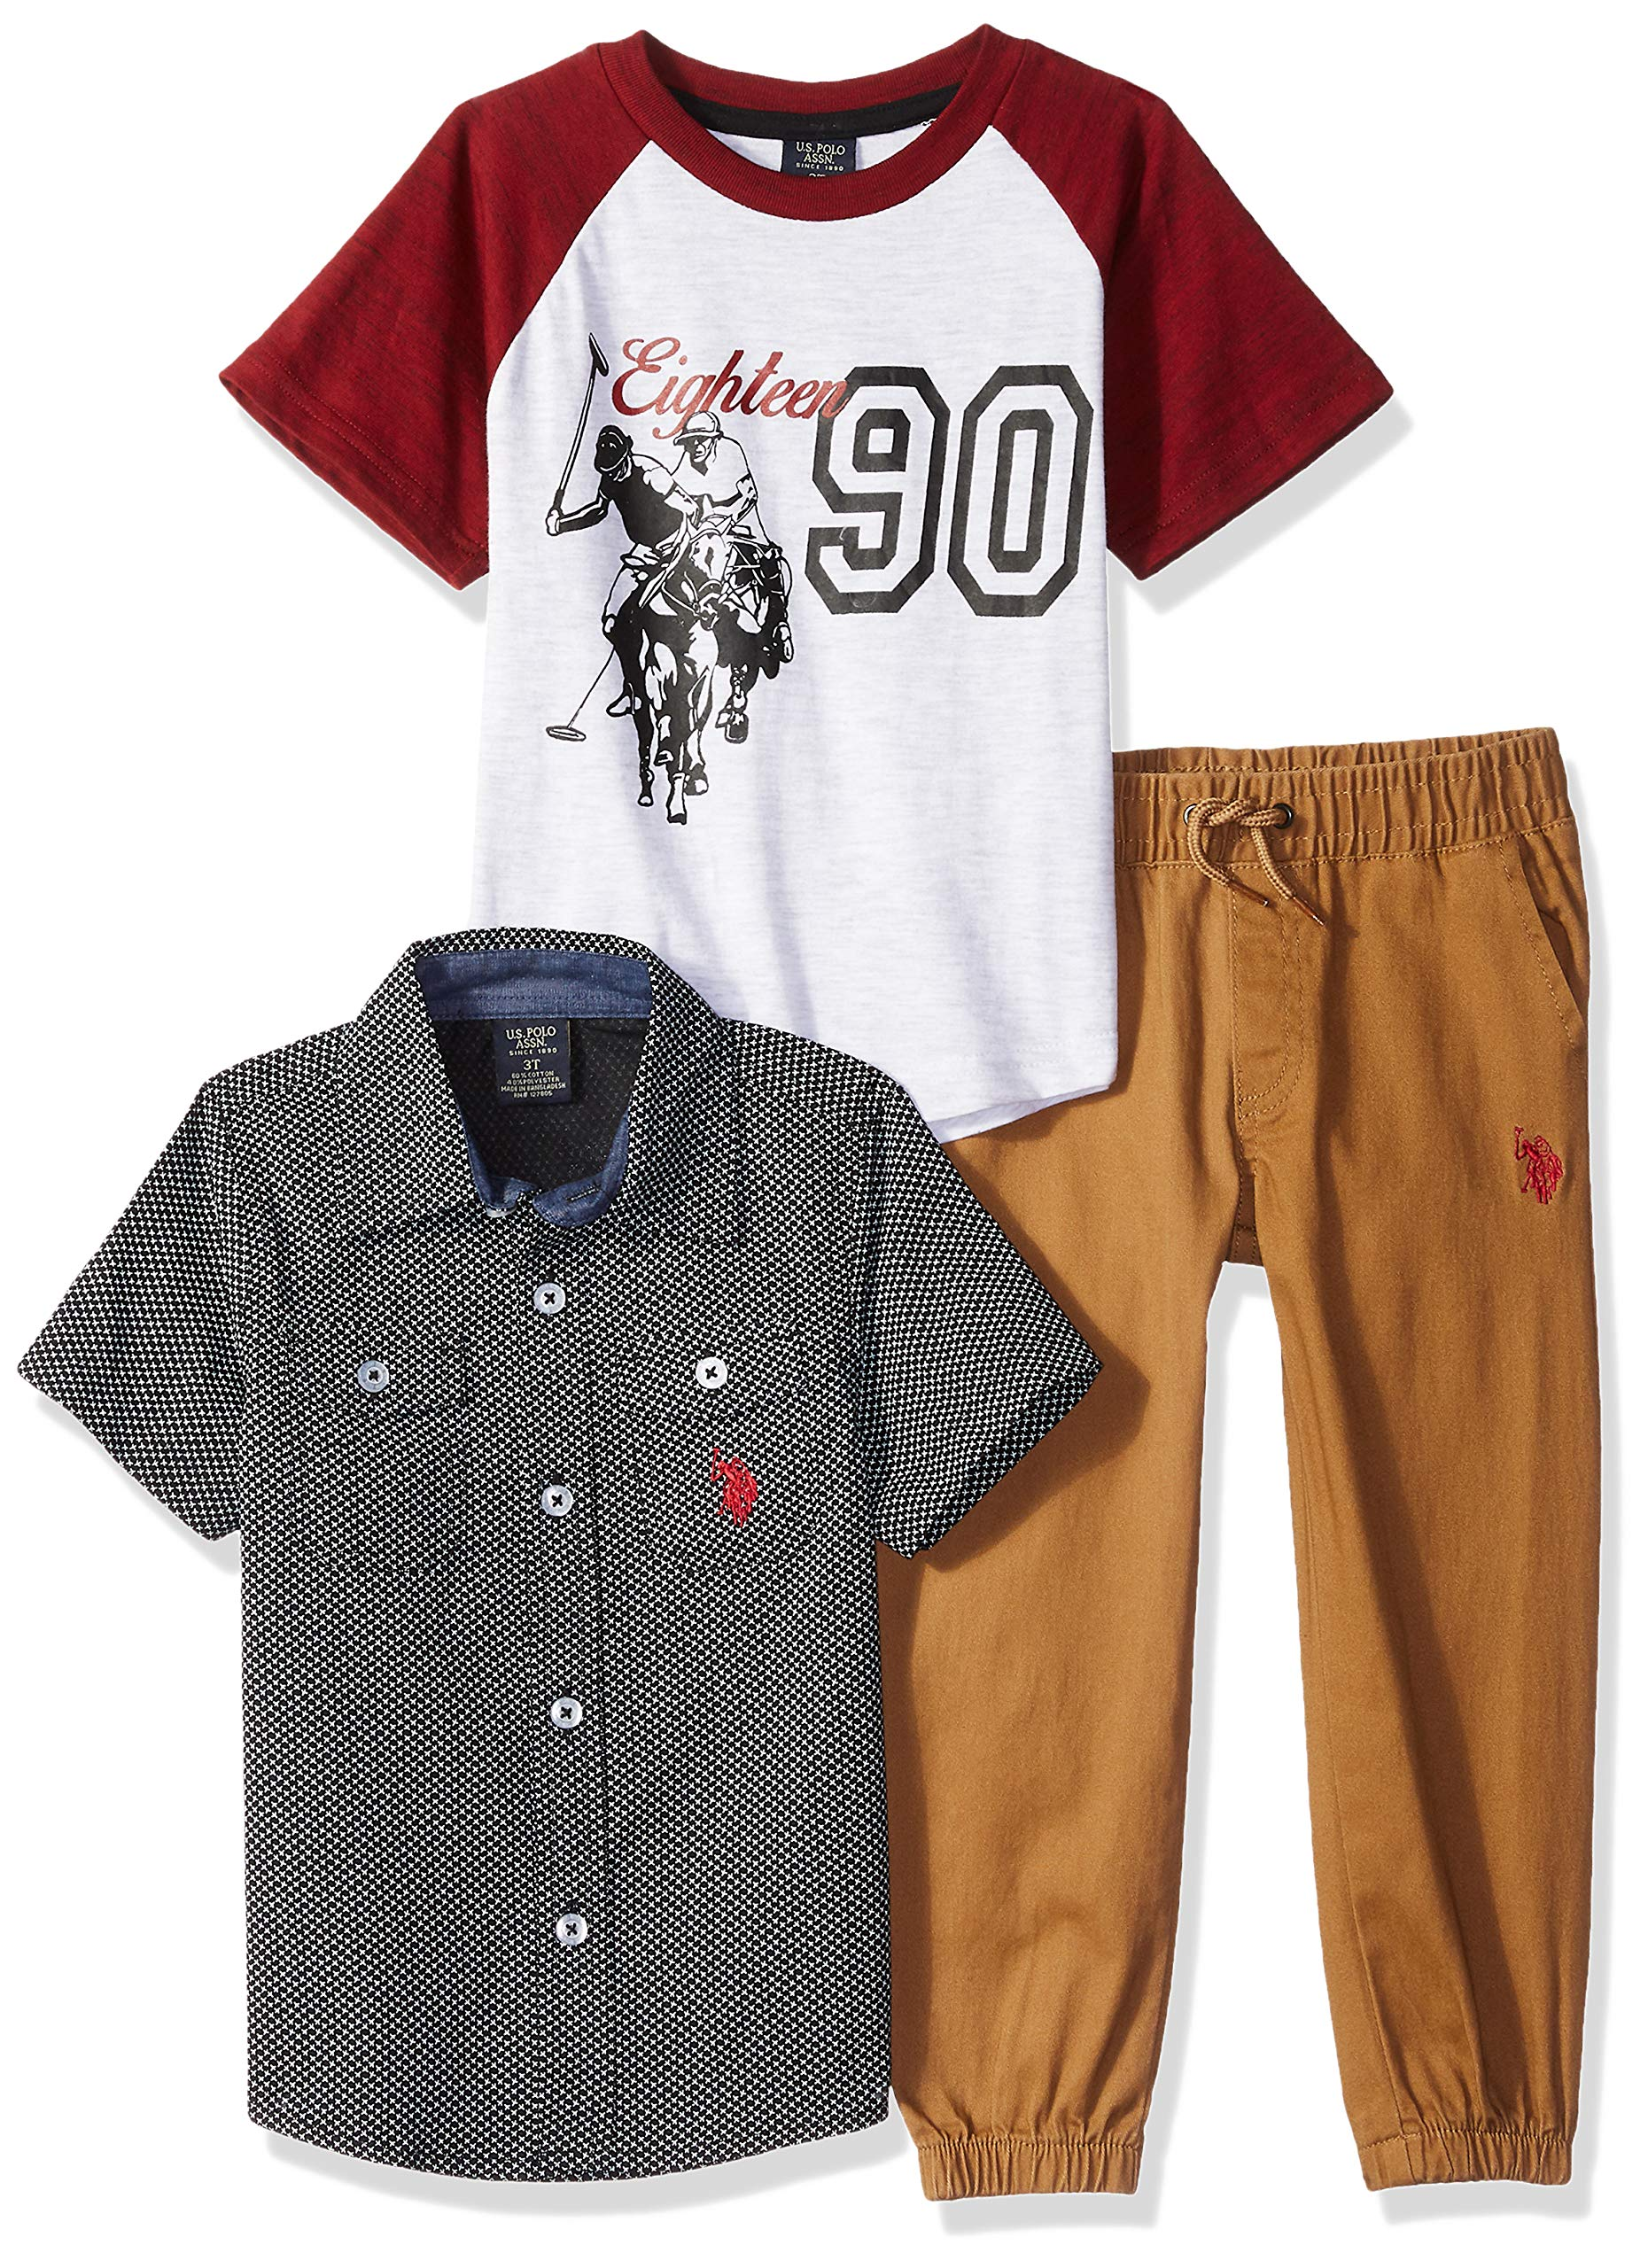 U.S. Polo Assn. Boys' Little T, Sport Shirt and Pant Set, British Tobacco Jogger Multi Plaid, 7